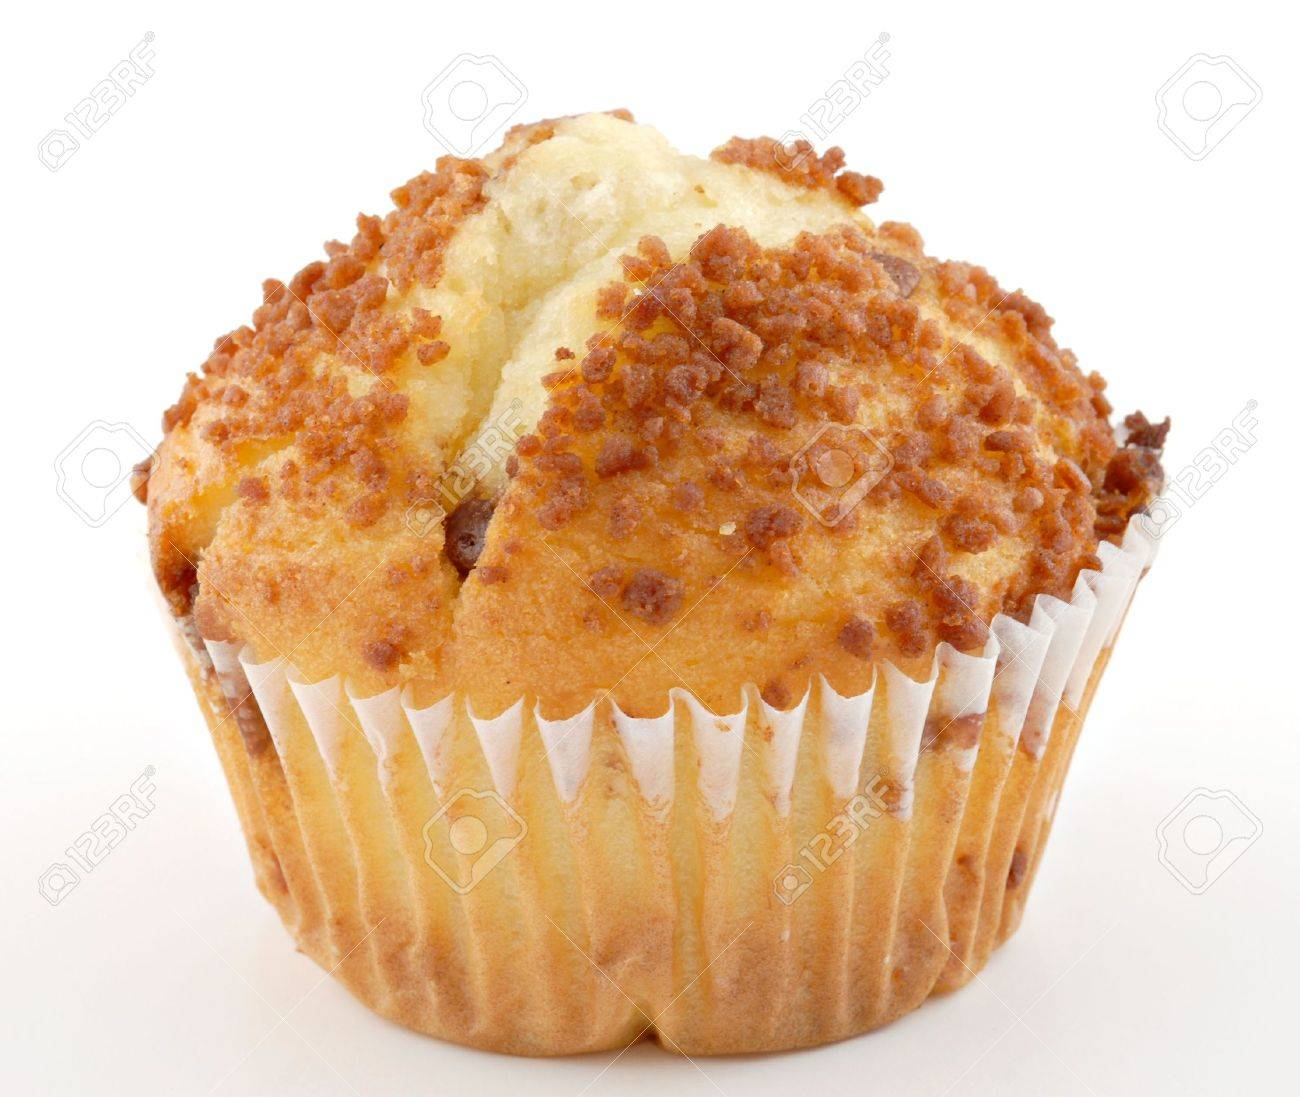 A cinnamon cream cheese muffin isolated on a white background. Stock Photo - 2633888